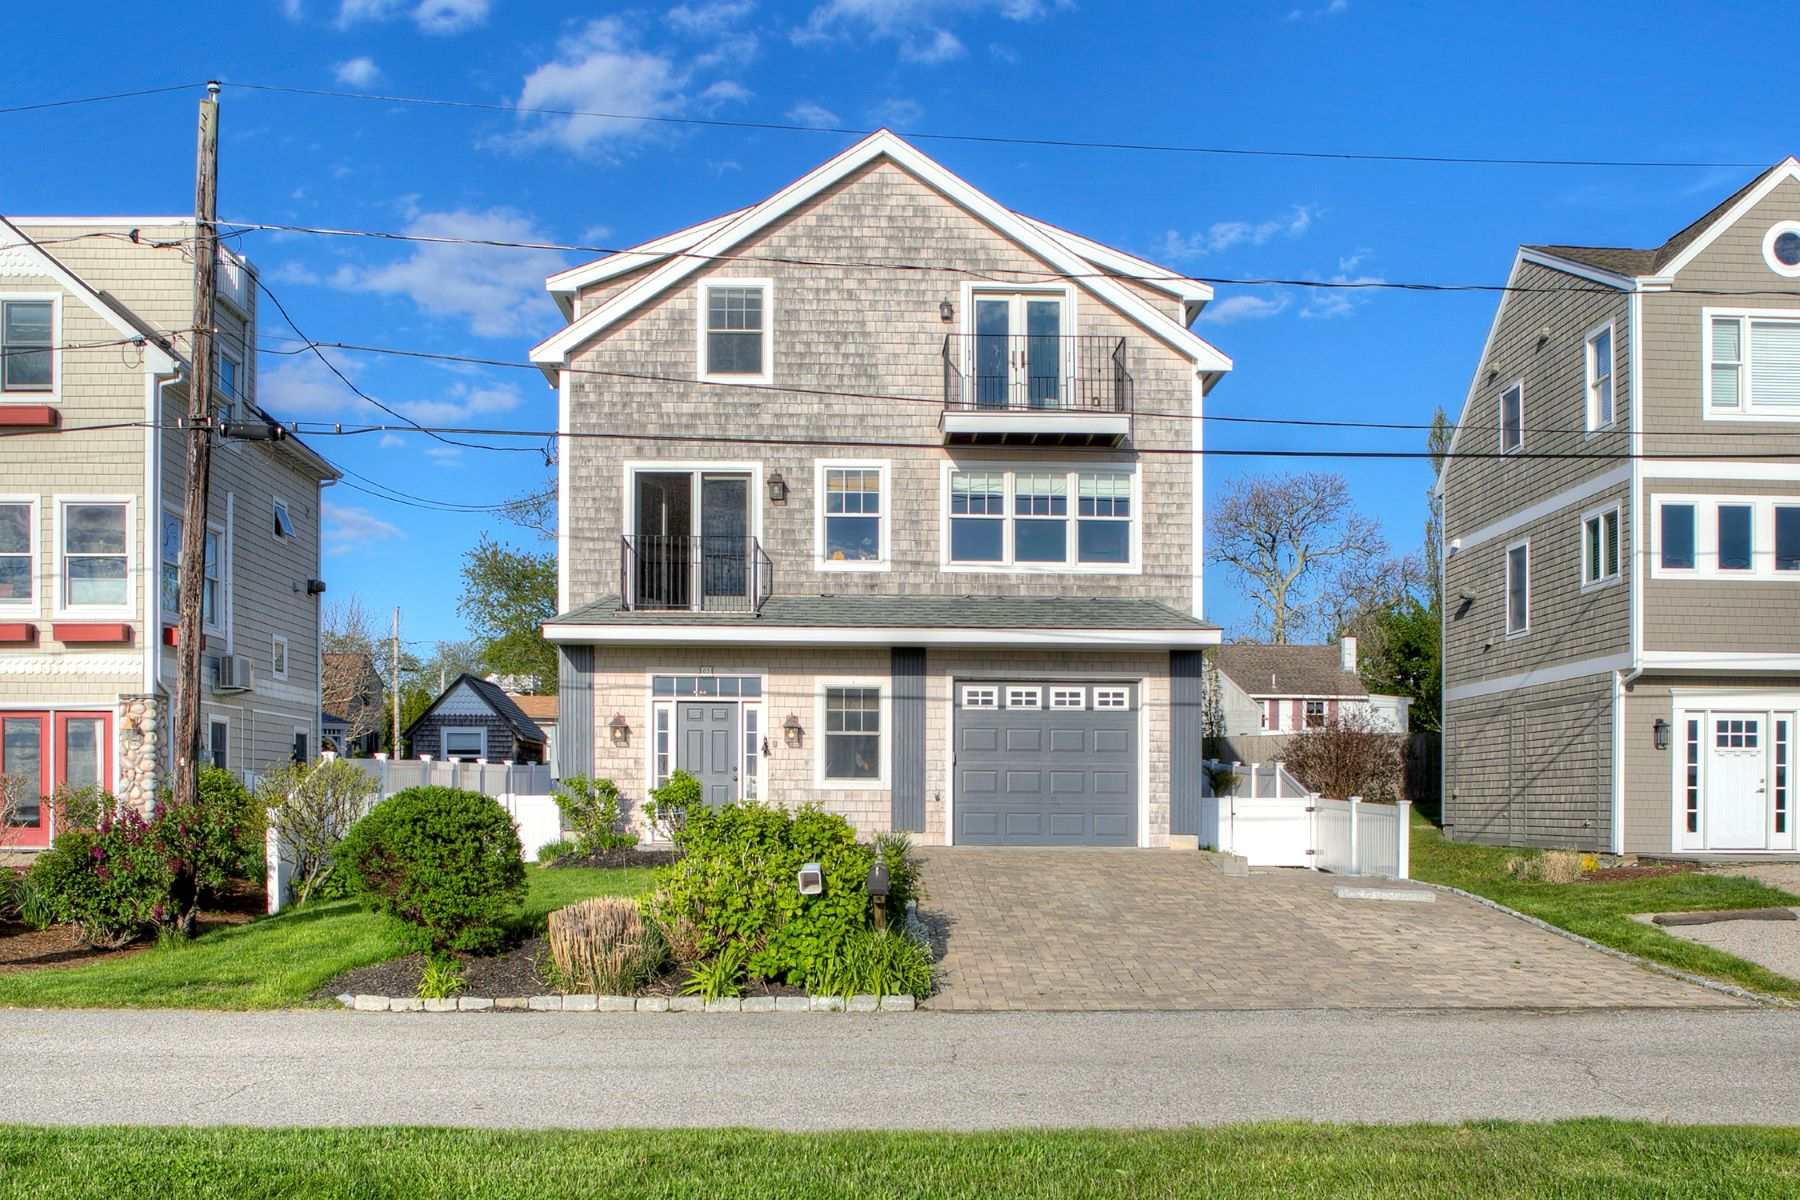 Single Family Homes for Sale at Panoramic Views 63 Attleboro Avenue Portsmouth, Rhode Island 02871 United States